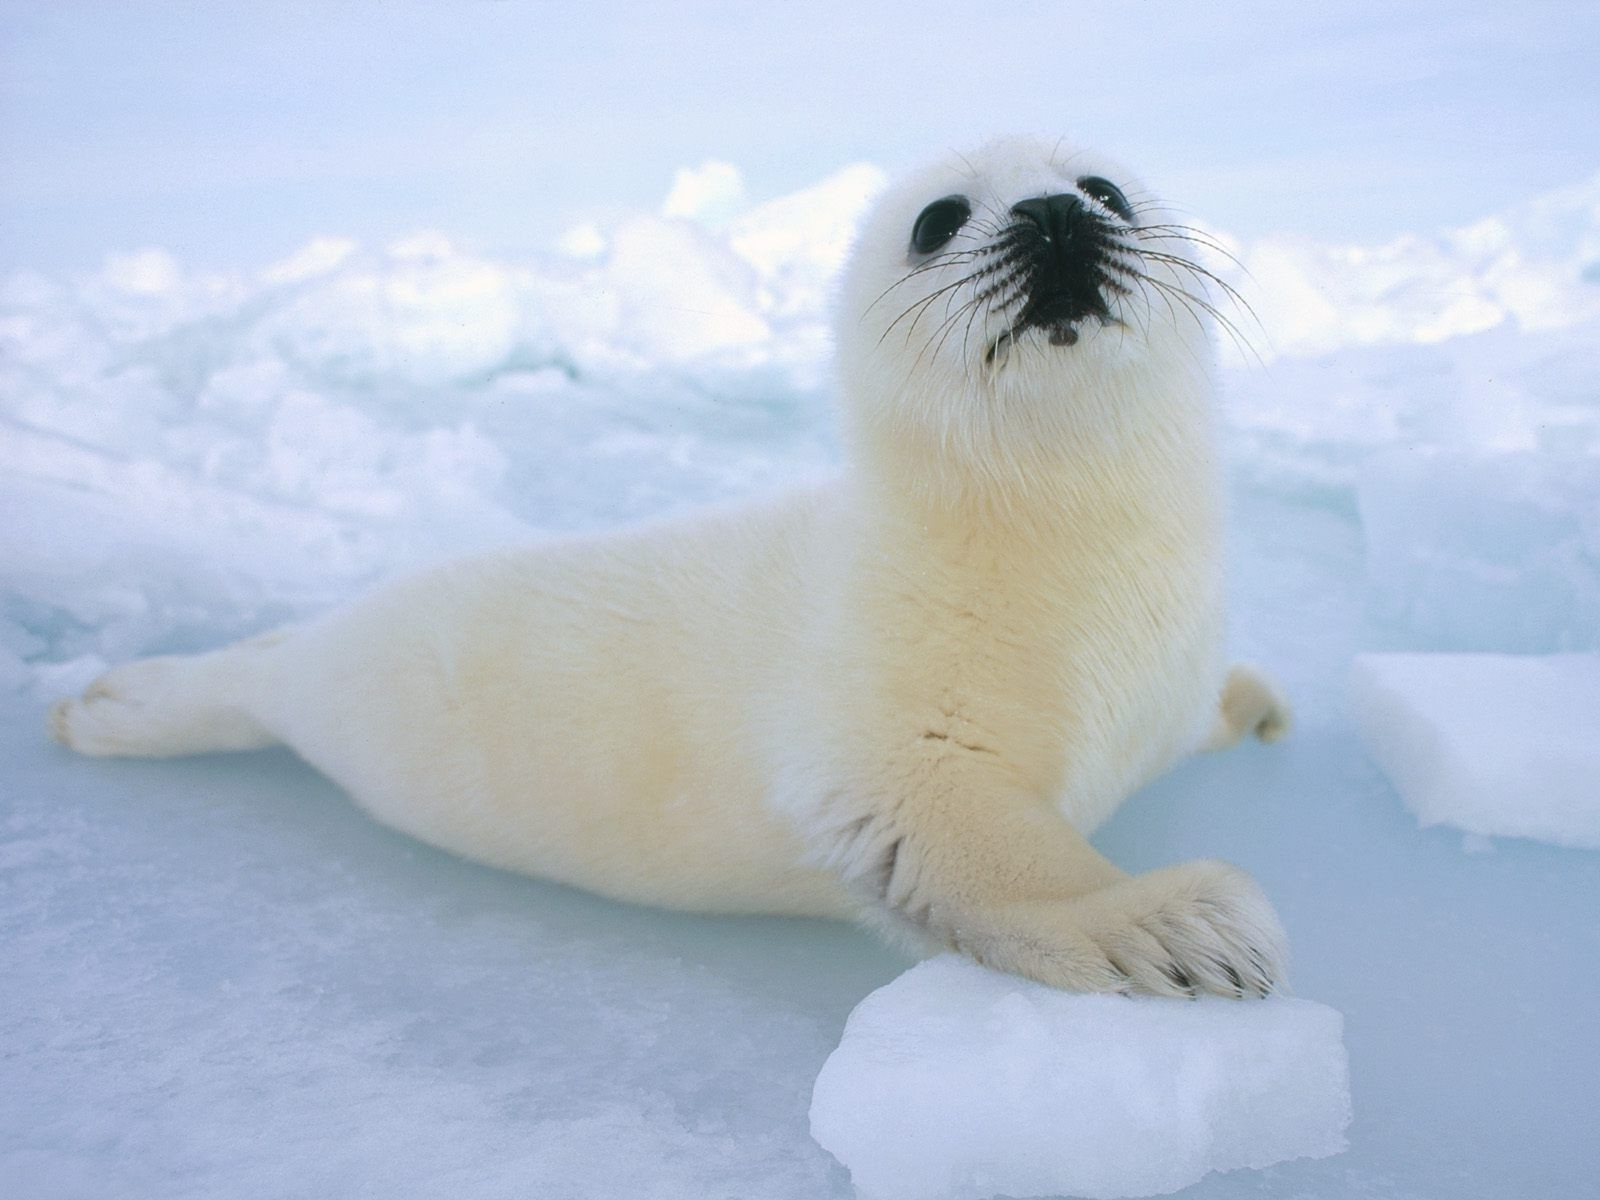 animals snow frosty winter mammal ice cold nature outdoors wildlife daylight polar cute water one animal ocean seal